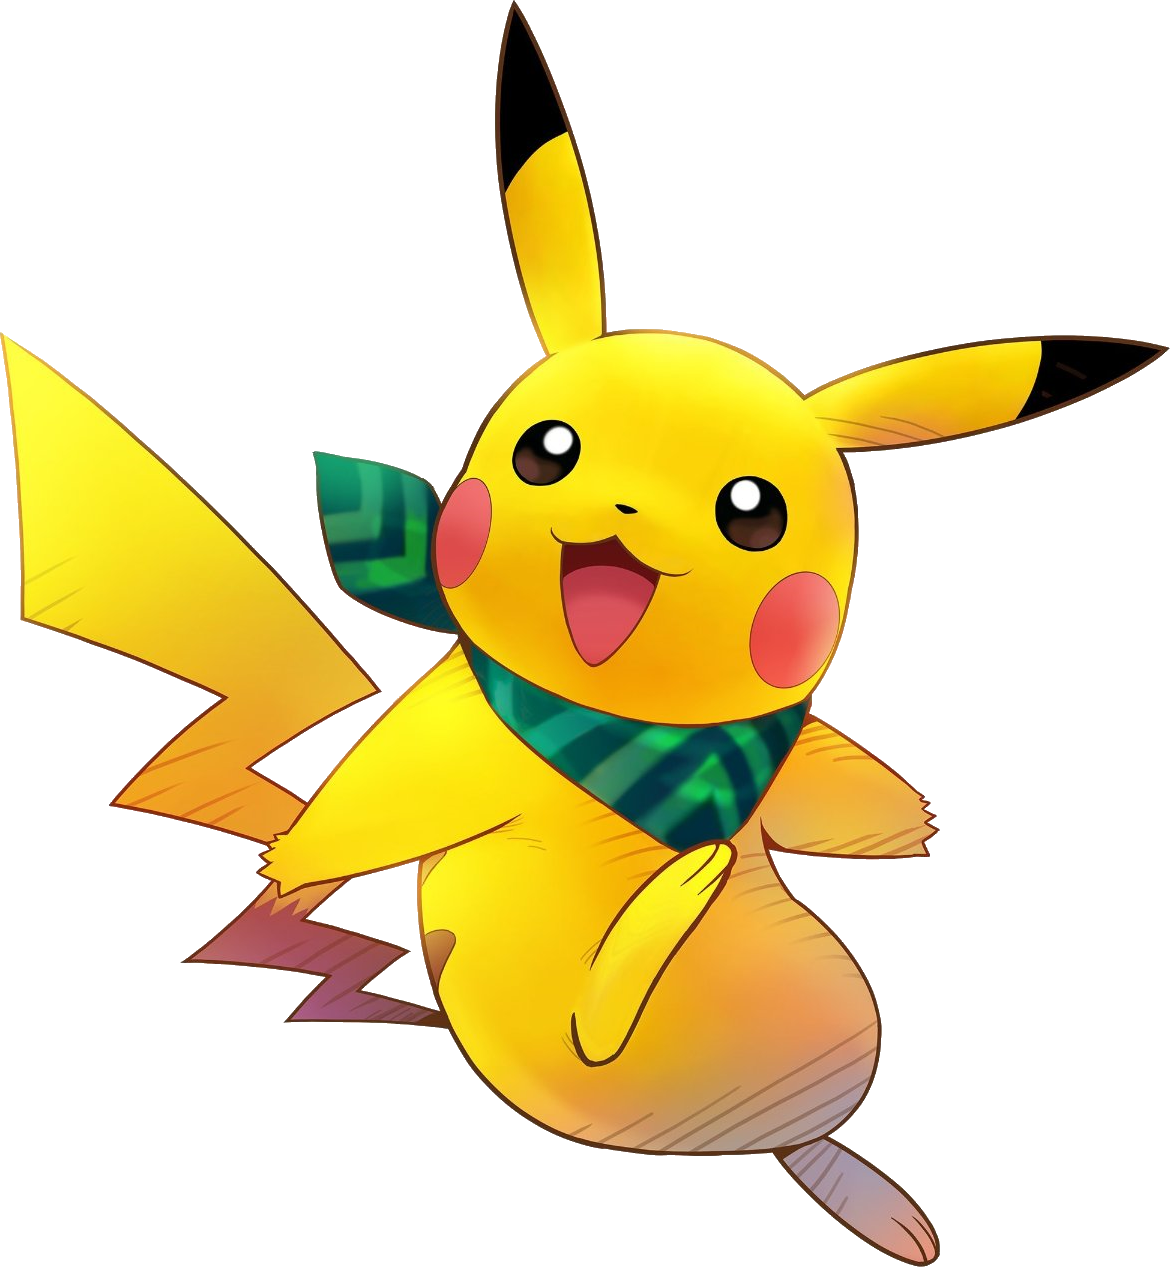 Pikachu | Pokémon Wiki | FANDOM powered by Wikia